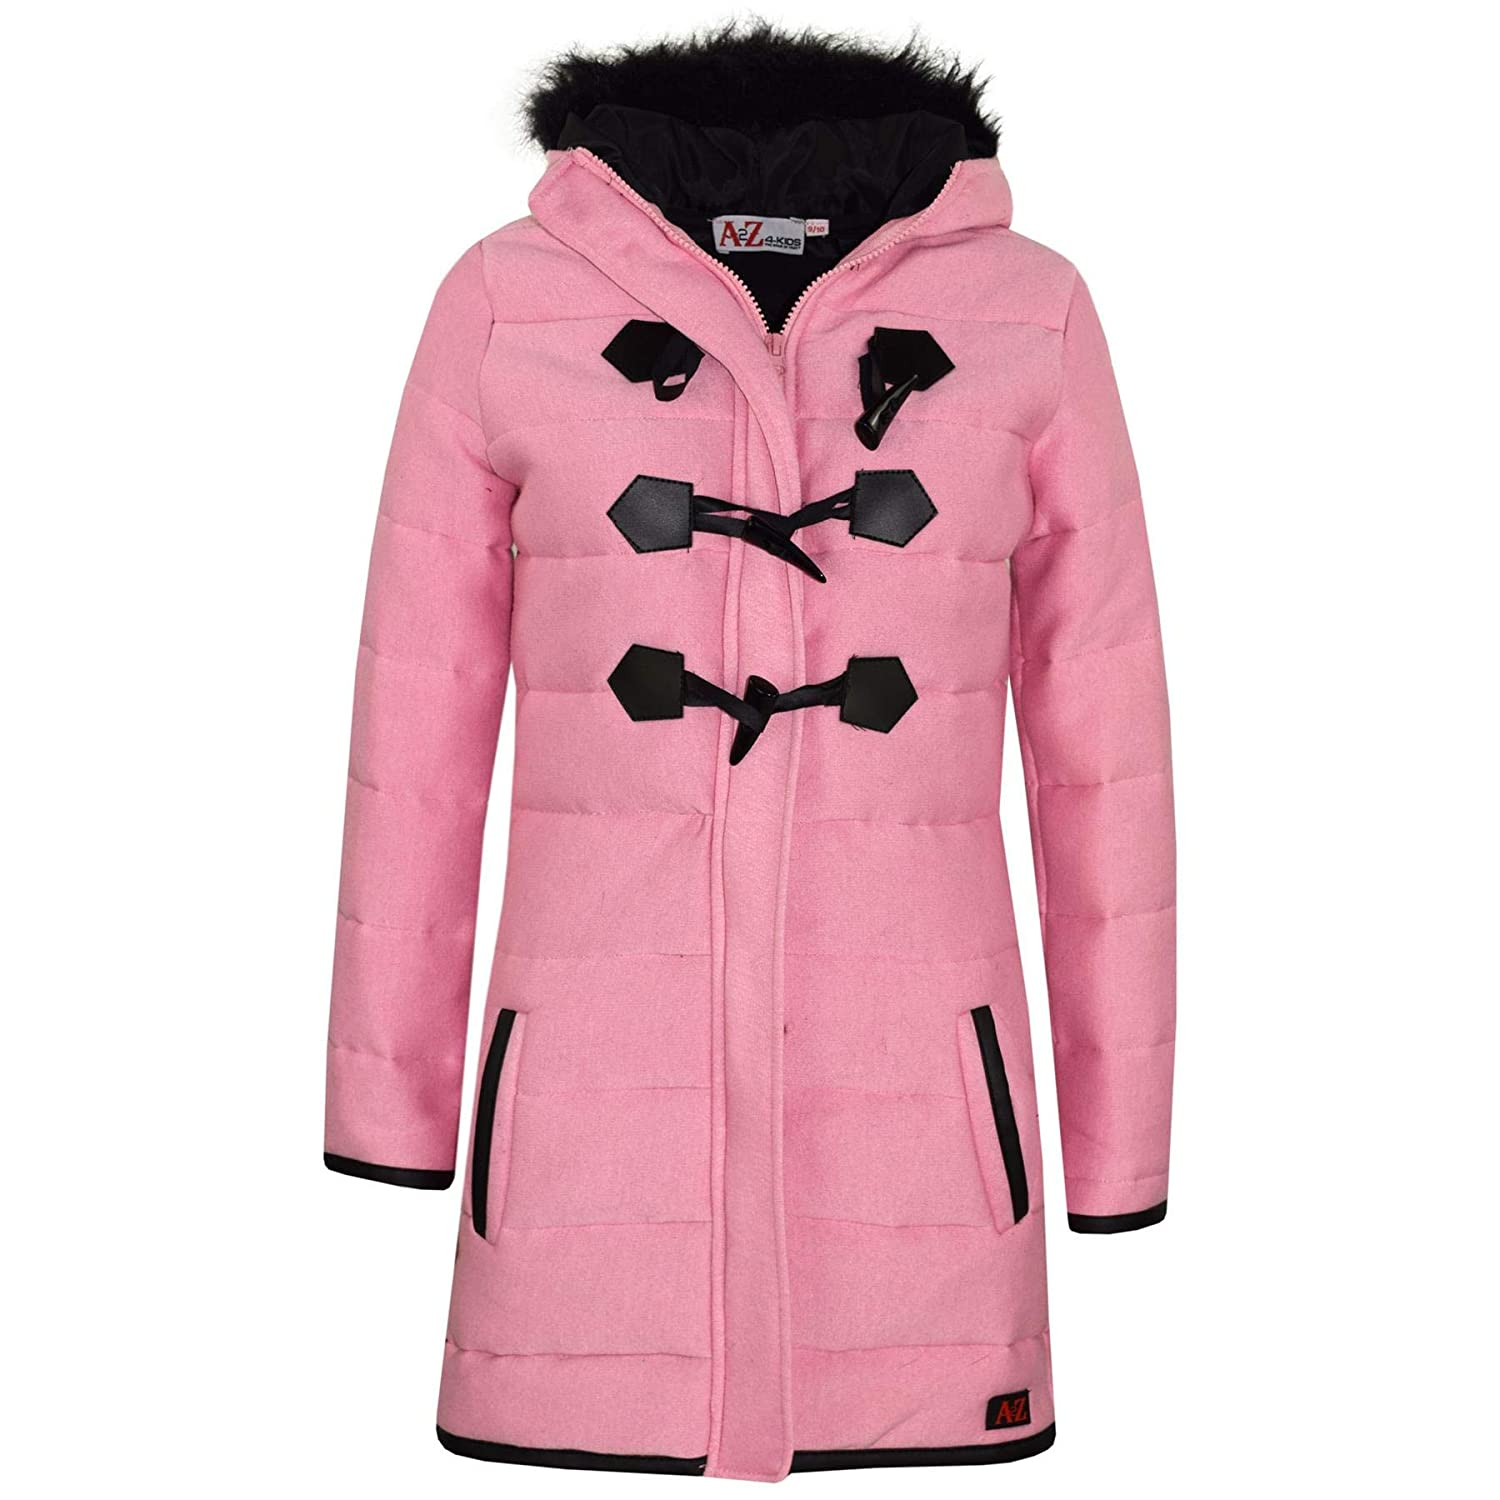 80401aae2a9 A2Z 4 Kids® Kids Coat Girls Fleece Parka Jacket Padded Long Faux Fur Hooded  Coats Age 3 4 5 6 7 8 9 10 11 12 13 Years